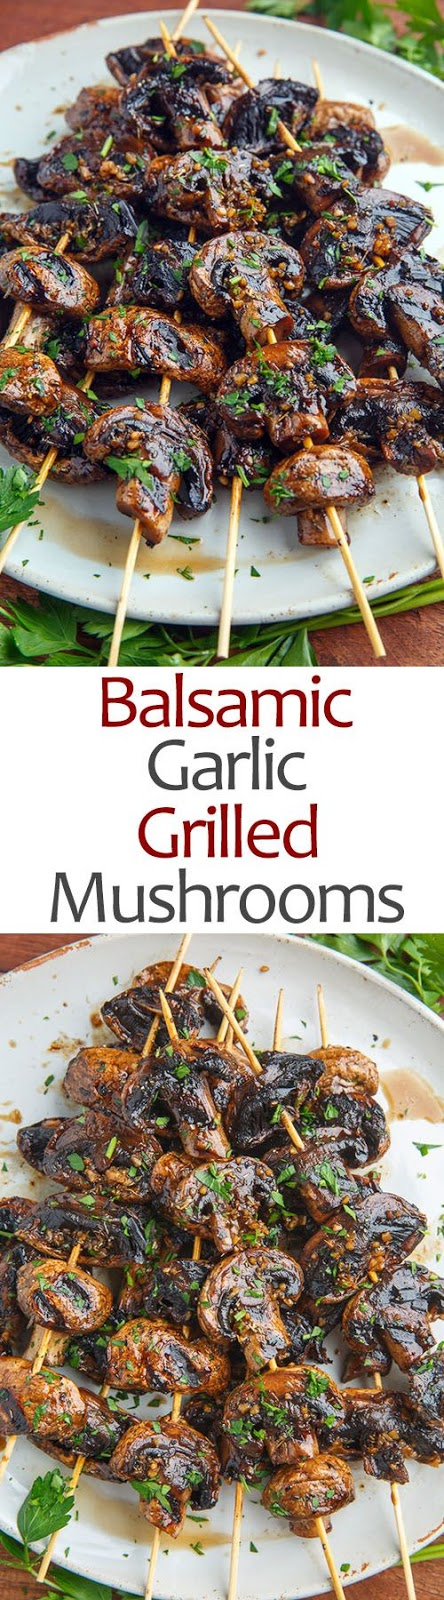 Balsamic Garlic Grilled Mushroom Skewers   #DESSERTS #HEALTHYFOOD #EASYRECIPES #DINNER #LAUCH #DELICIOUS #EASY #HOLIDAYS #RECIPE #SPECIALDIET #WORLDCUISINE #CAKE #APPETIZERS #HEALTHYRECIPES #DRINKS #COOKINGMETHOD #ITALIANRECIPES #MEAT #VEGANRECIPES #COOKIES #PASTA #FRUIT #SALAD #SOUPAPPETIZERS #NONALCOHOLICDRINKS #MEALPLANNING #VEGETABLES #SOUP #PASTRY #CHOCOLATE #DAIRY #ALCOHOLICDRINKS #BULGURSALAD #BAKING #SNACKS #BEEFRECIPES #MEATAPPETIZERS #MEXICANRECIPES #BREAD #ASIANRECIPES #SEAFOODAPPETIZERS #MUFFINS #BREAKFASTANDBRUNCH #CONDIMENTS #CUPCAKES #CHEESE #CHICKENRECIPES #PIE #COFFEE #NOBAKEDESSERTS #HEALTHYSNACKS #SEAFOOD #GRAIN #LUNCHESDINNERS #MEXICAN #QUICKBREAD #LIQUOR